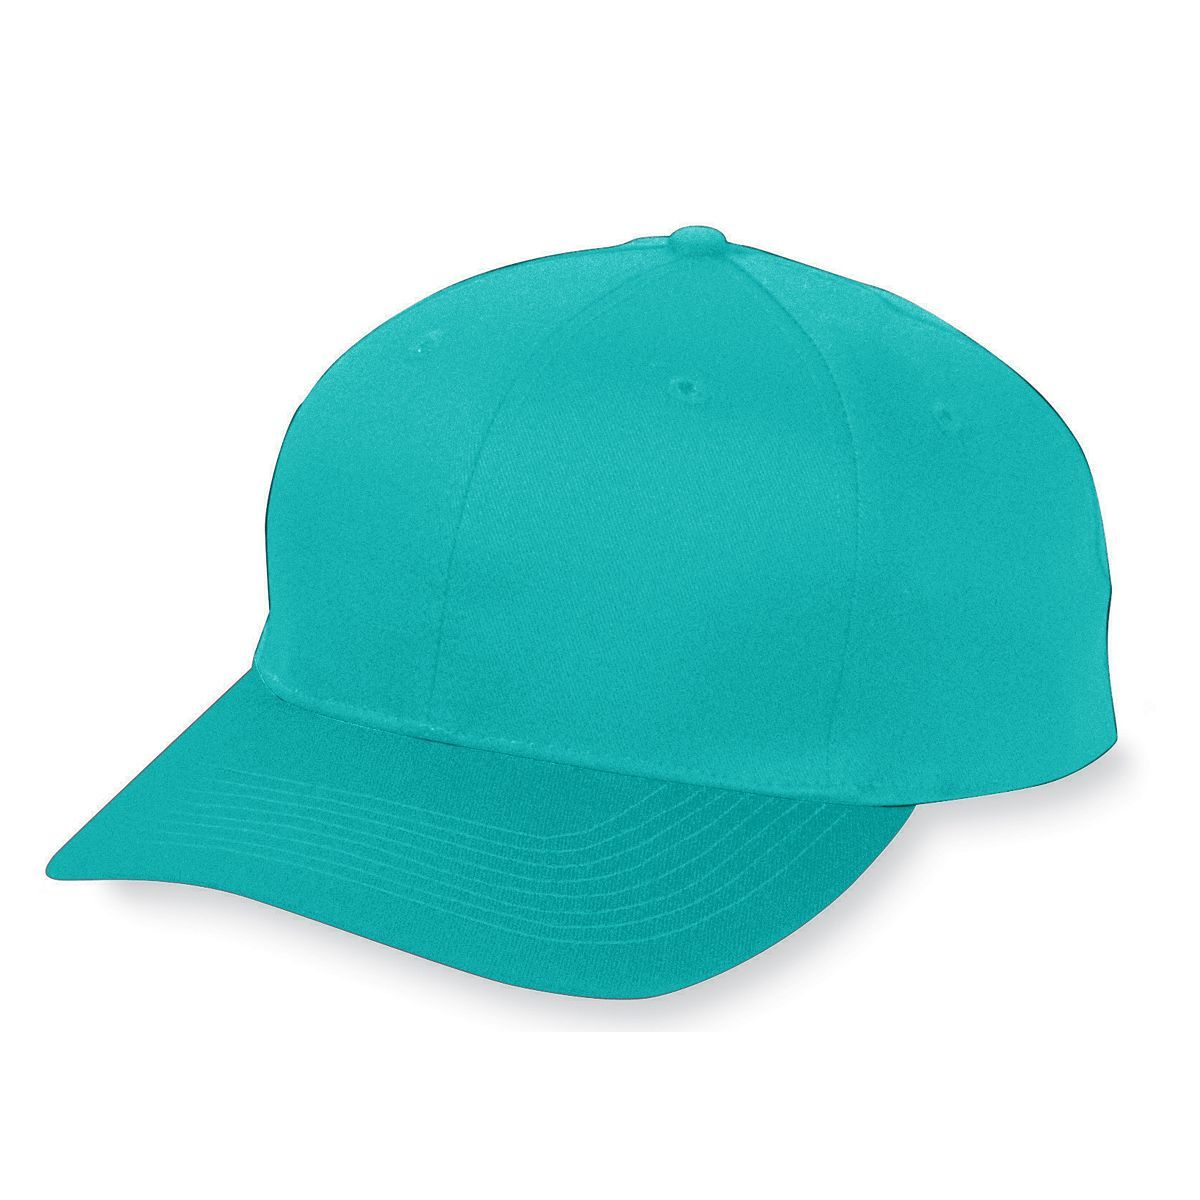 Six-Panel Cotton Twill Low-Profile Cap - TEAL